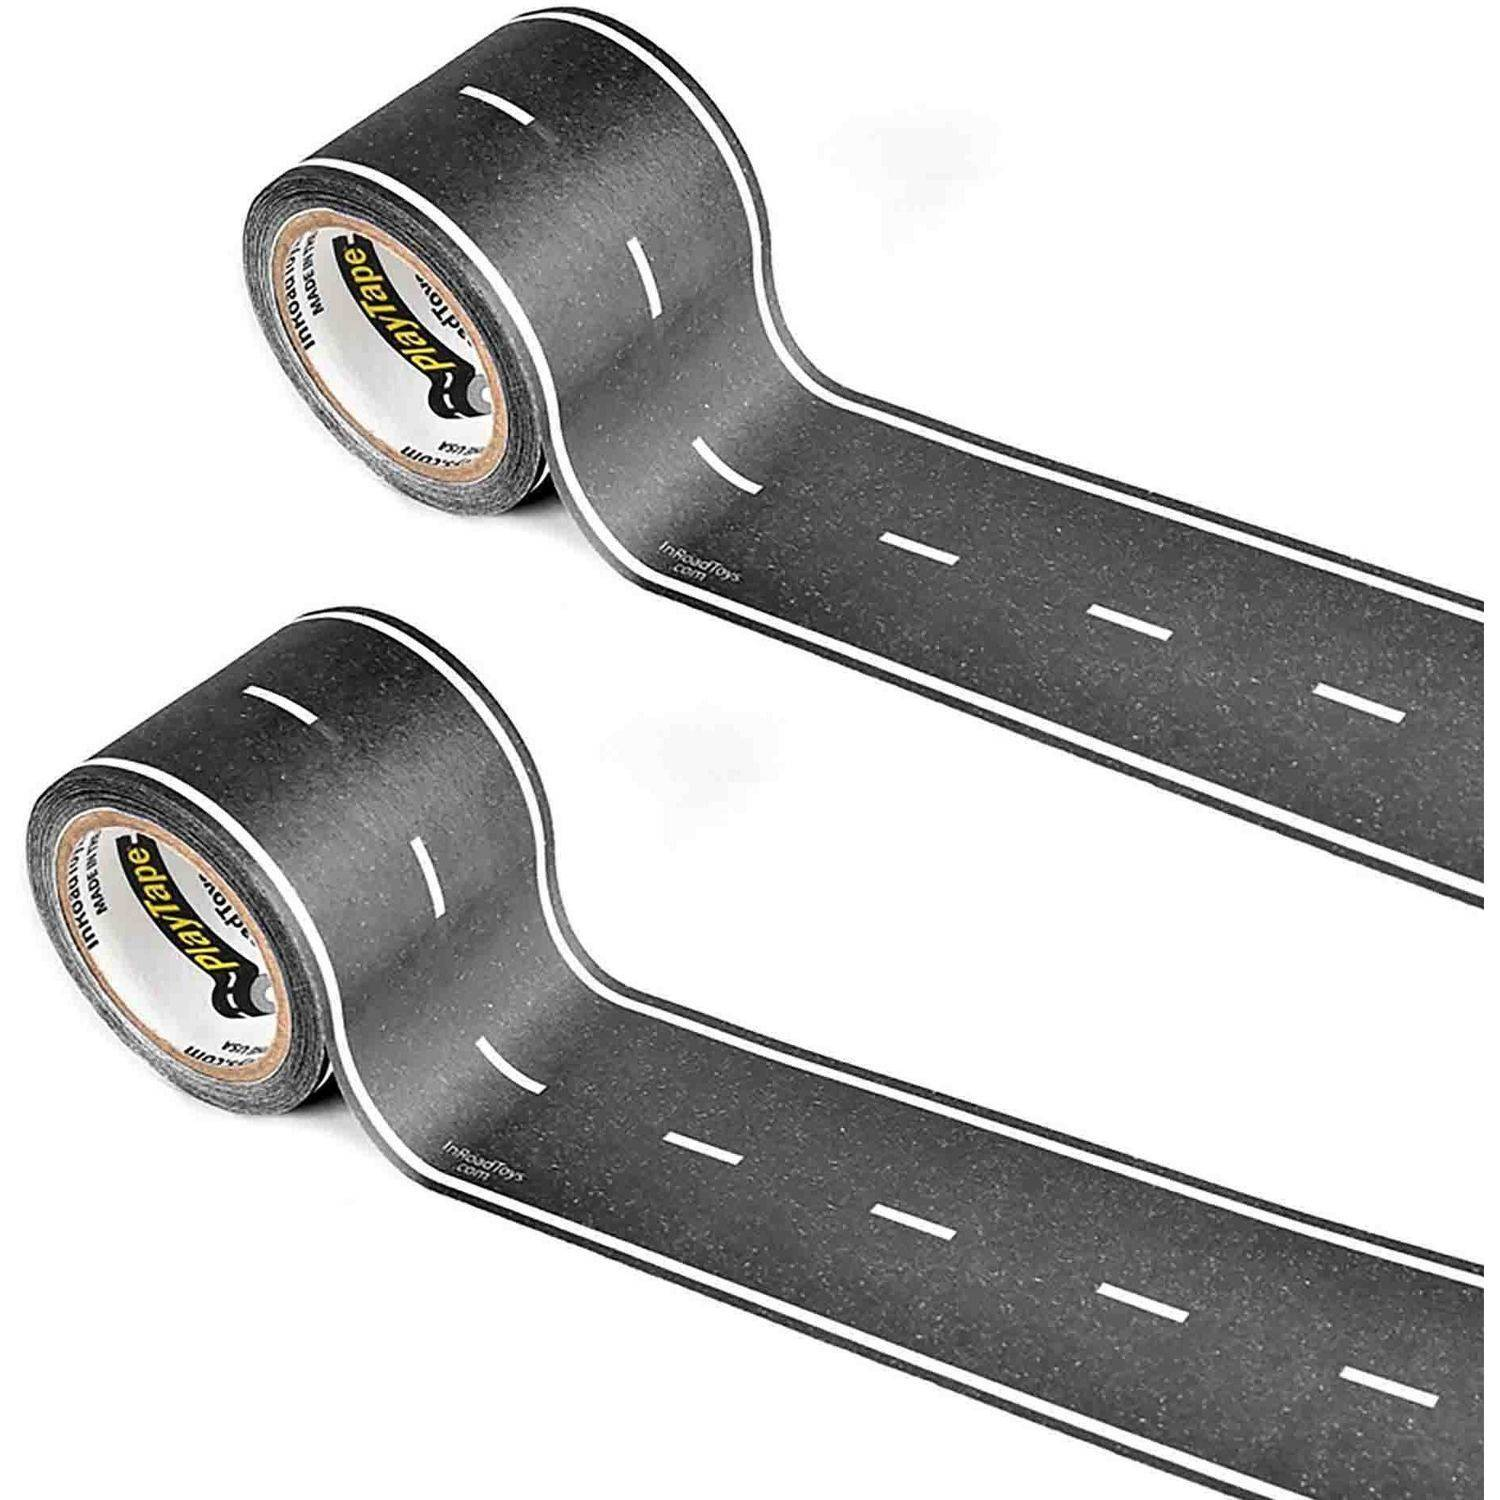 "PlayTape Classic Road Series Bundle 30' x 2"" Road, Black, Pack of 2"